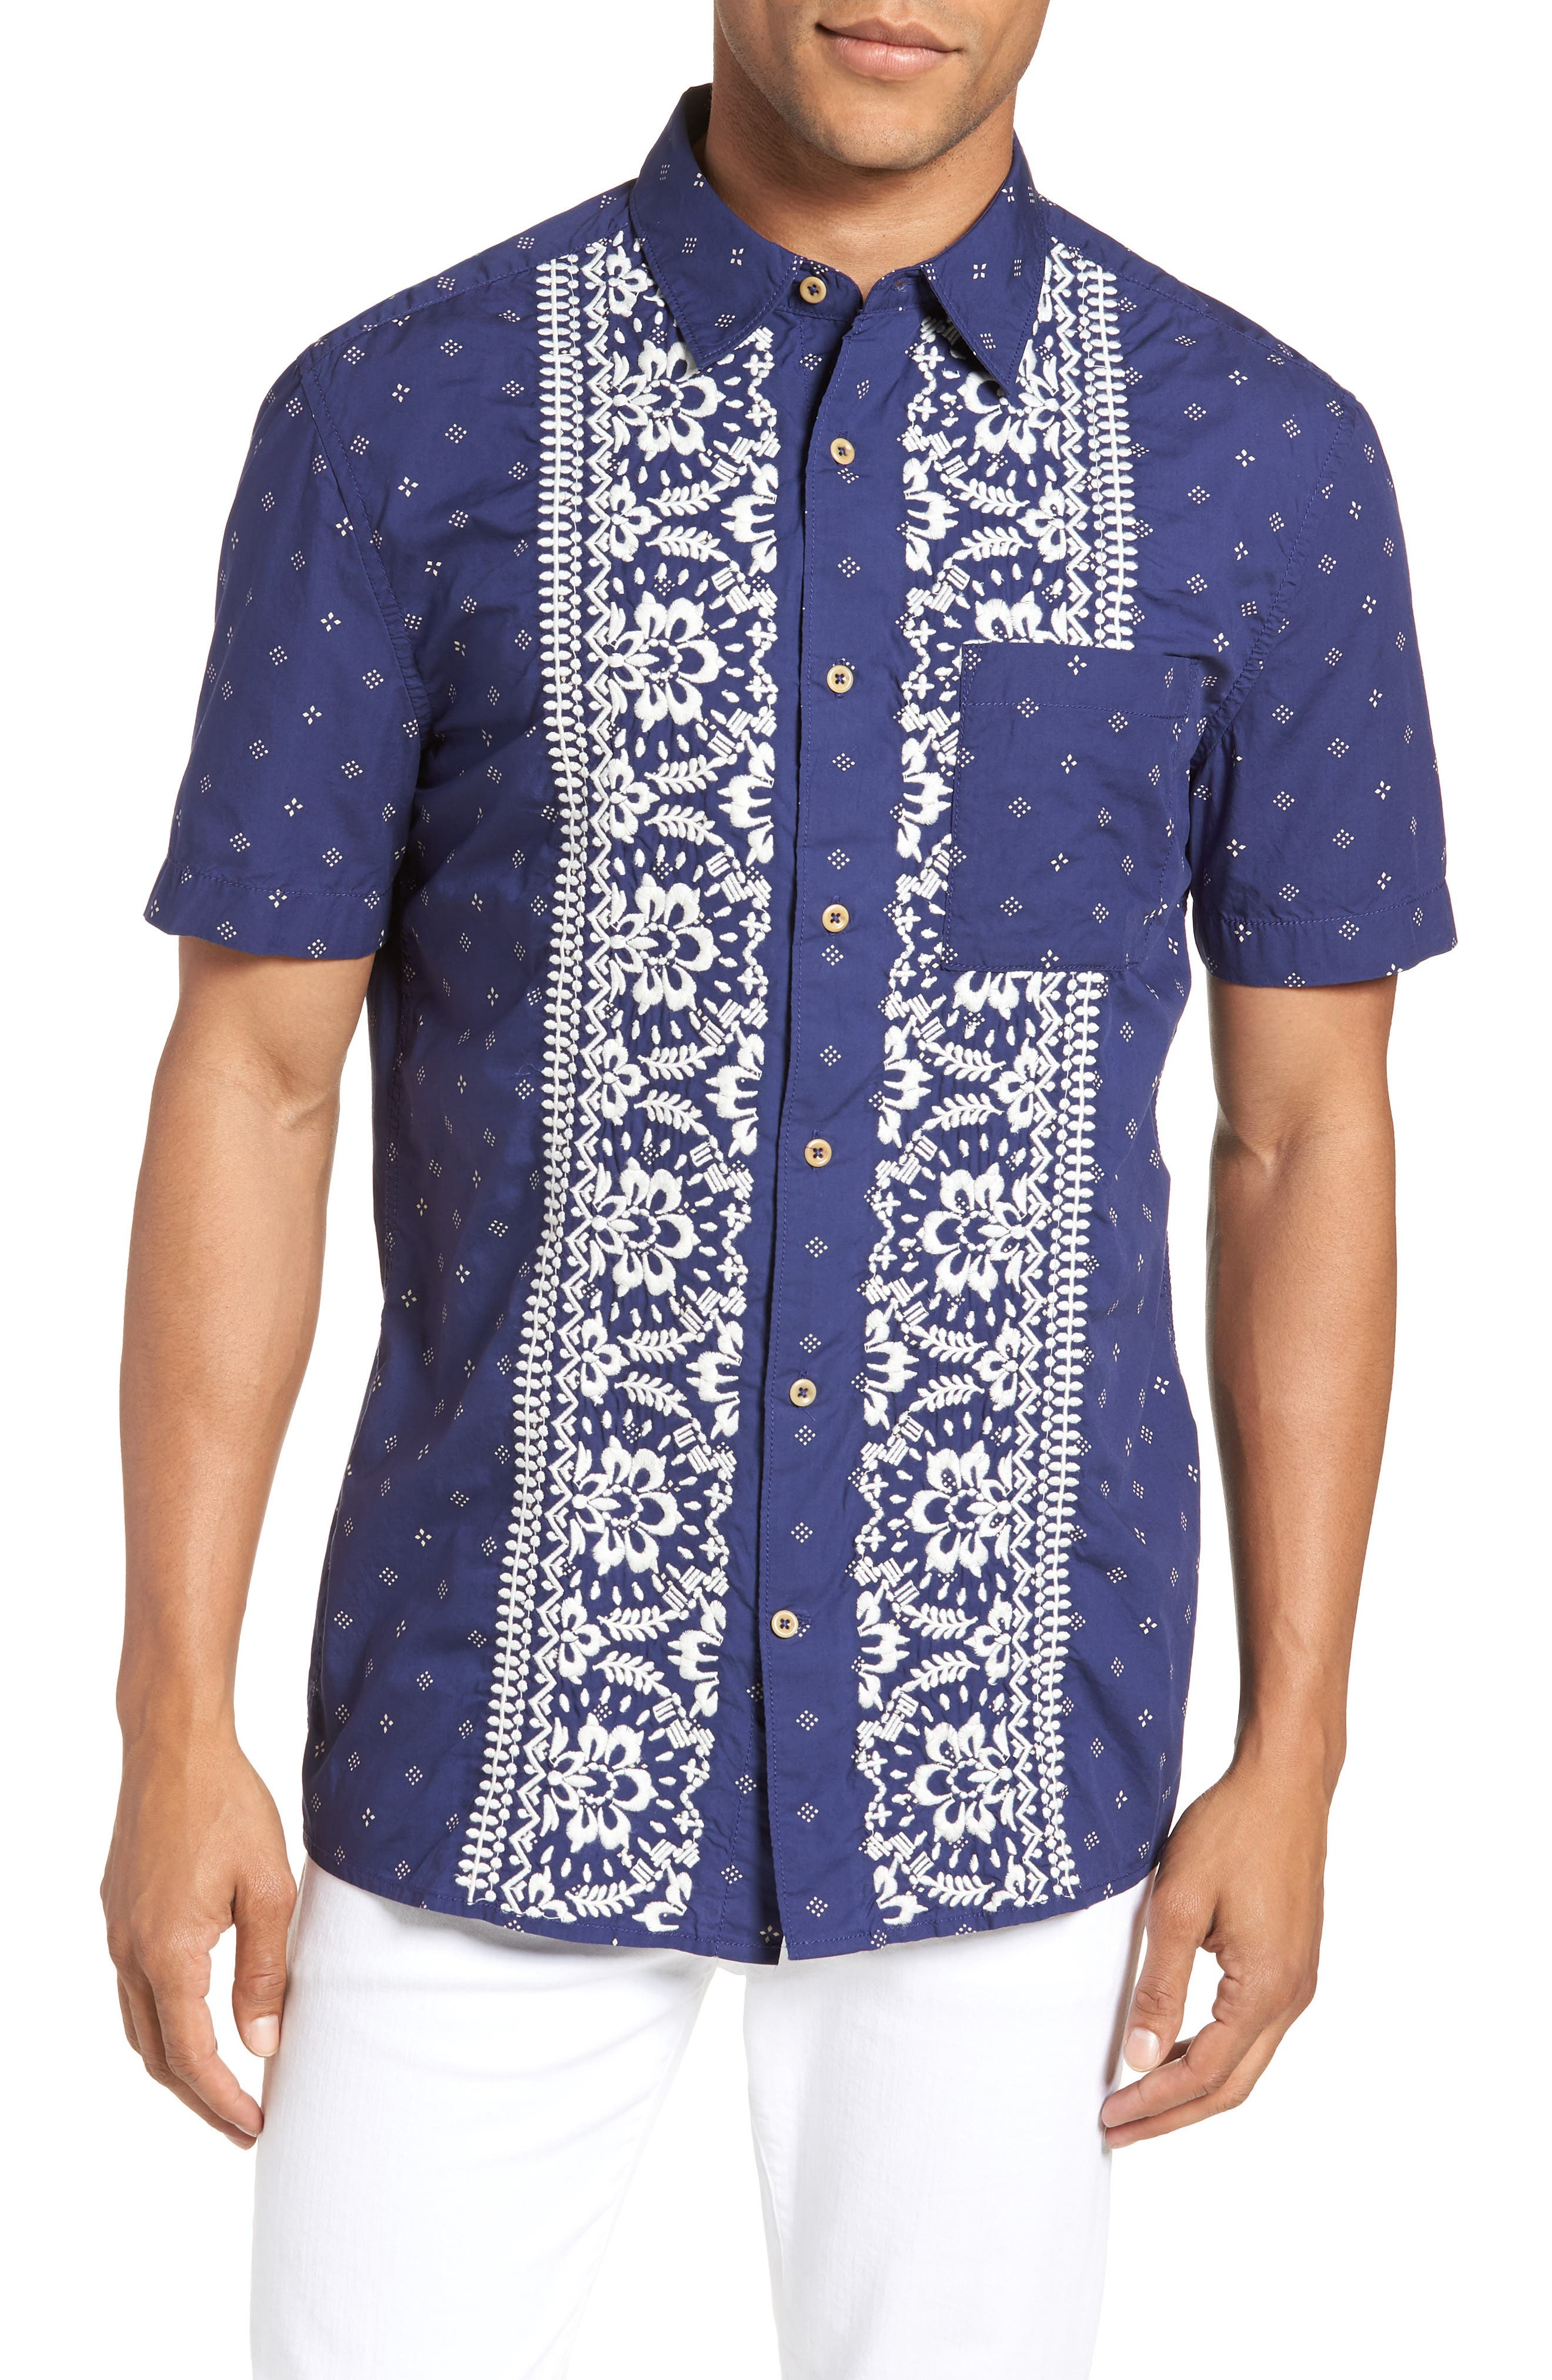 Iki Lawn Embroidered Shirt,                             Main thumbnail 1, color,                             PATRIOT BLUE TURTLE DOVE